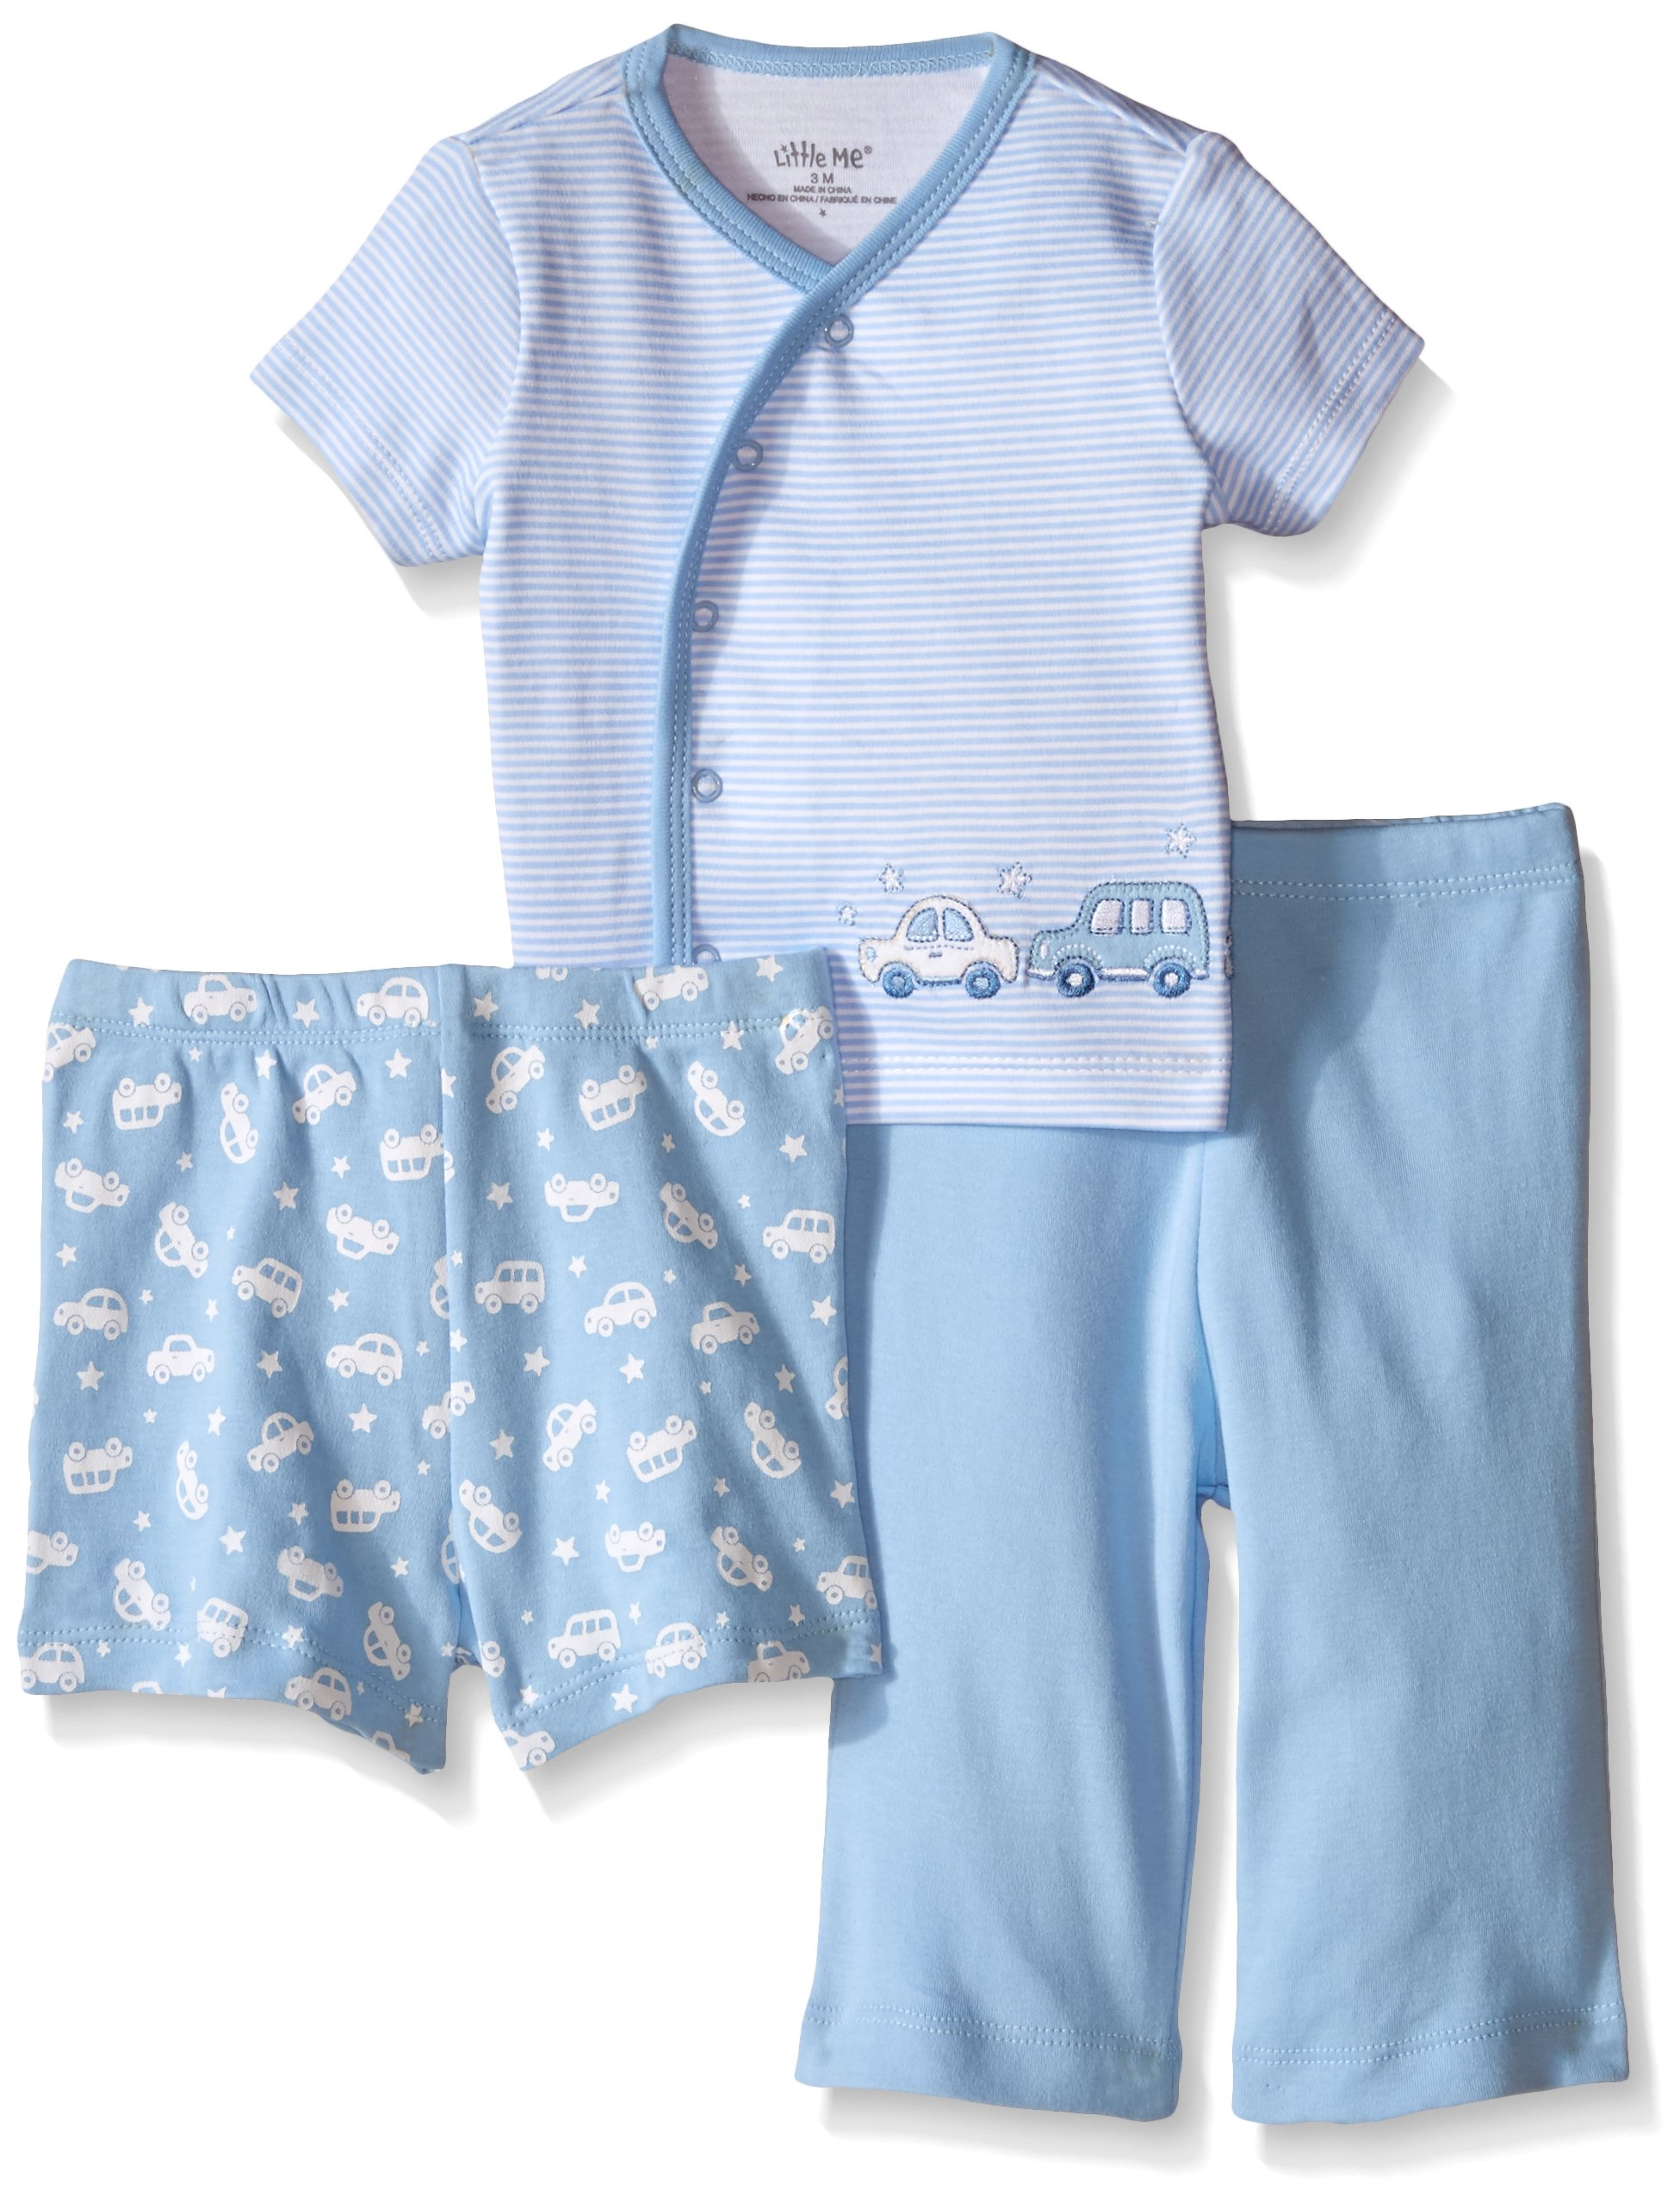 Little Me Baby Boys' 3 Piece Diaper Set